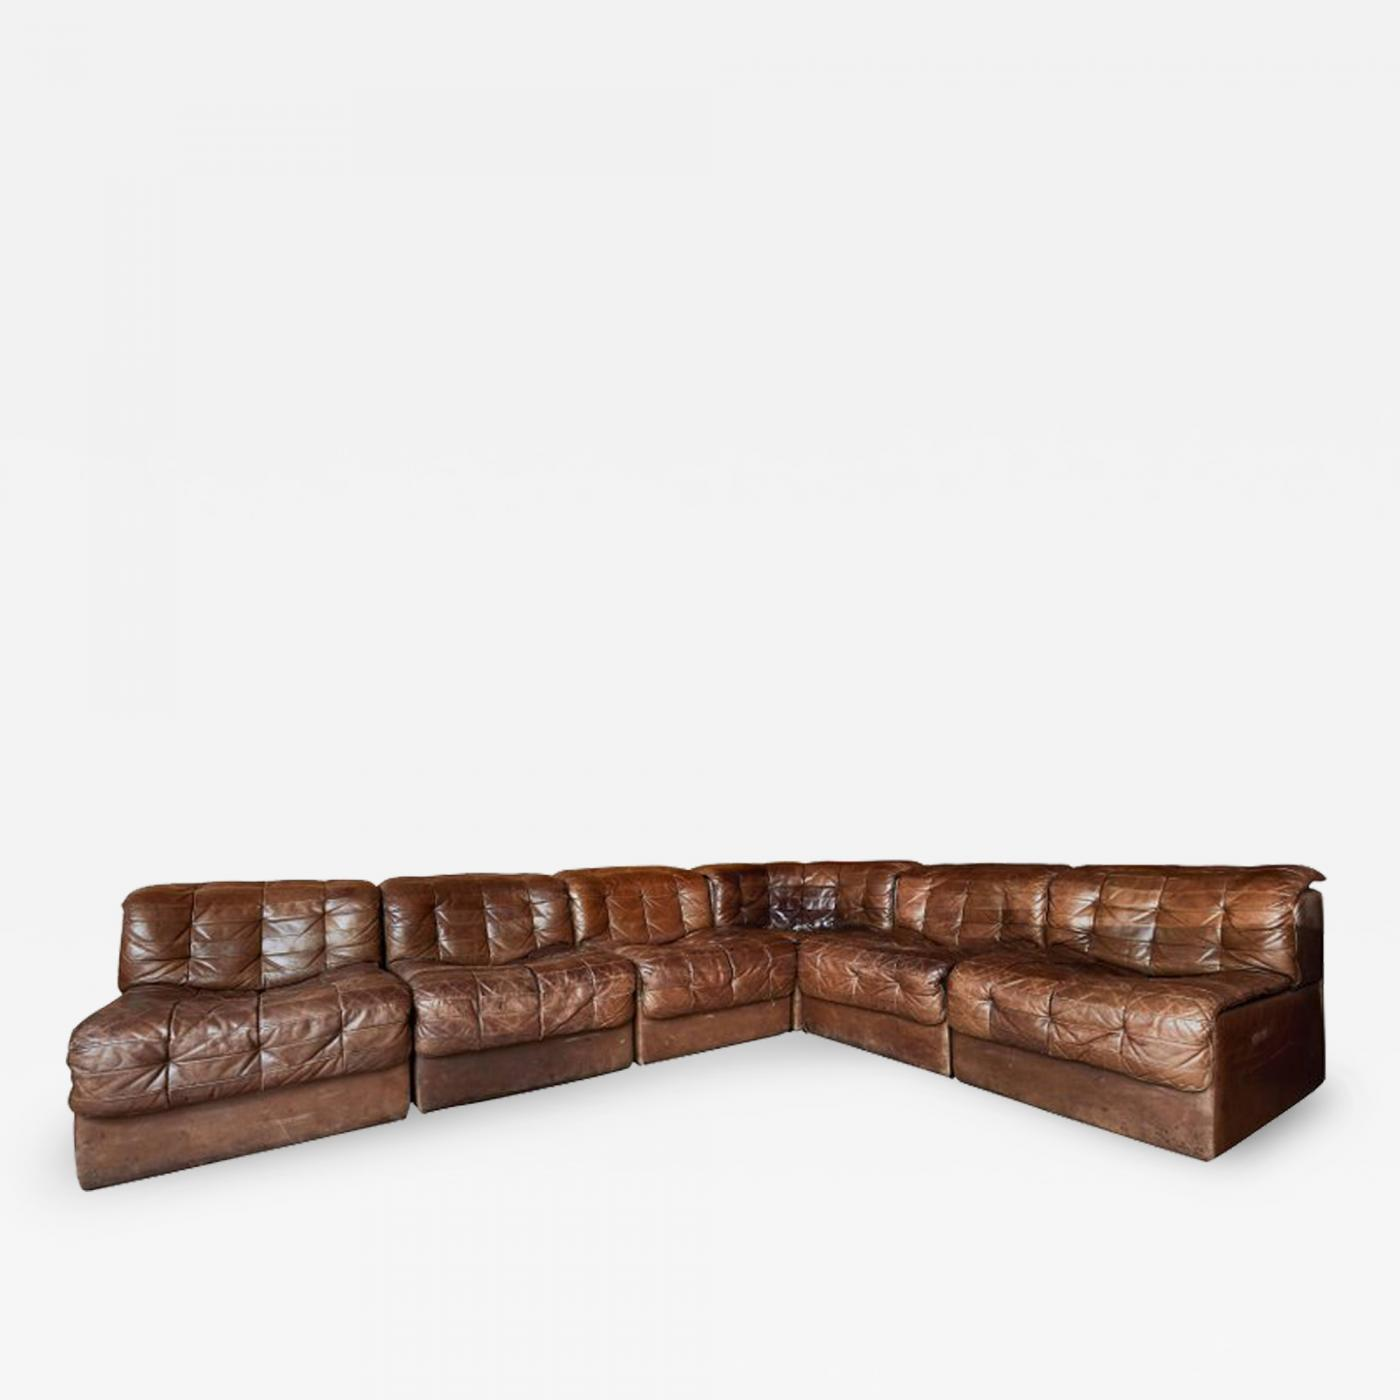 De Sede Patchwork.De Sede De Sede Ds 11 Modular Patchwork Leather Sectional Sofa